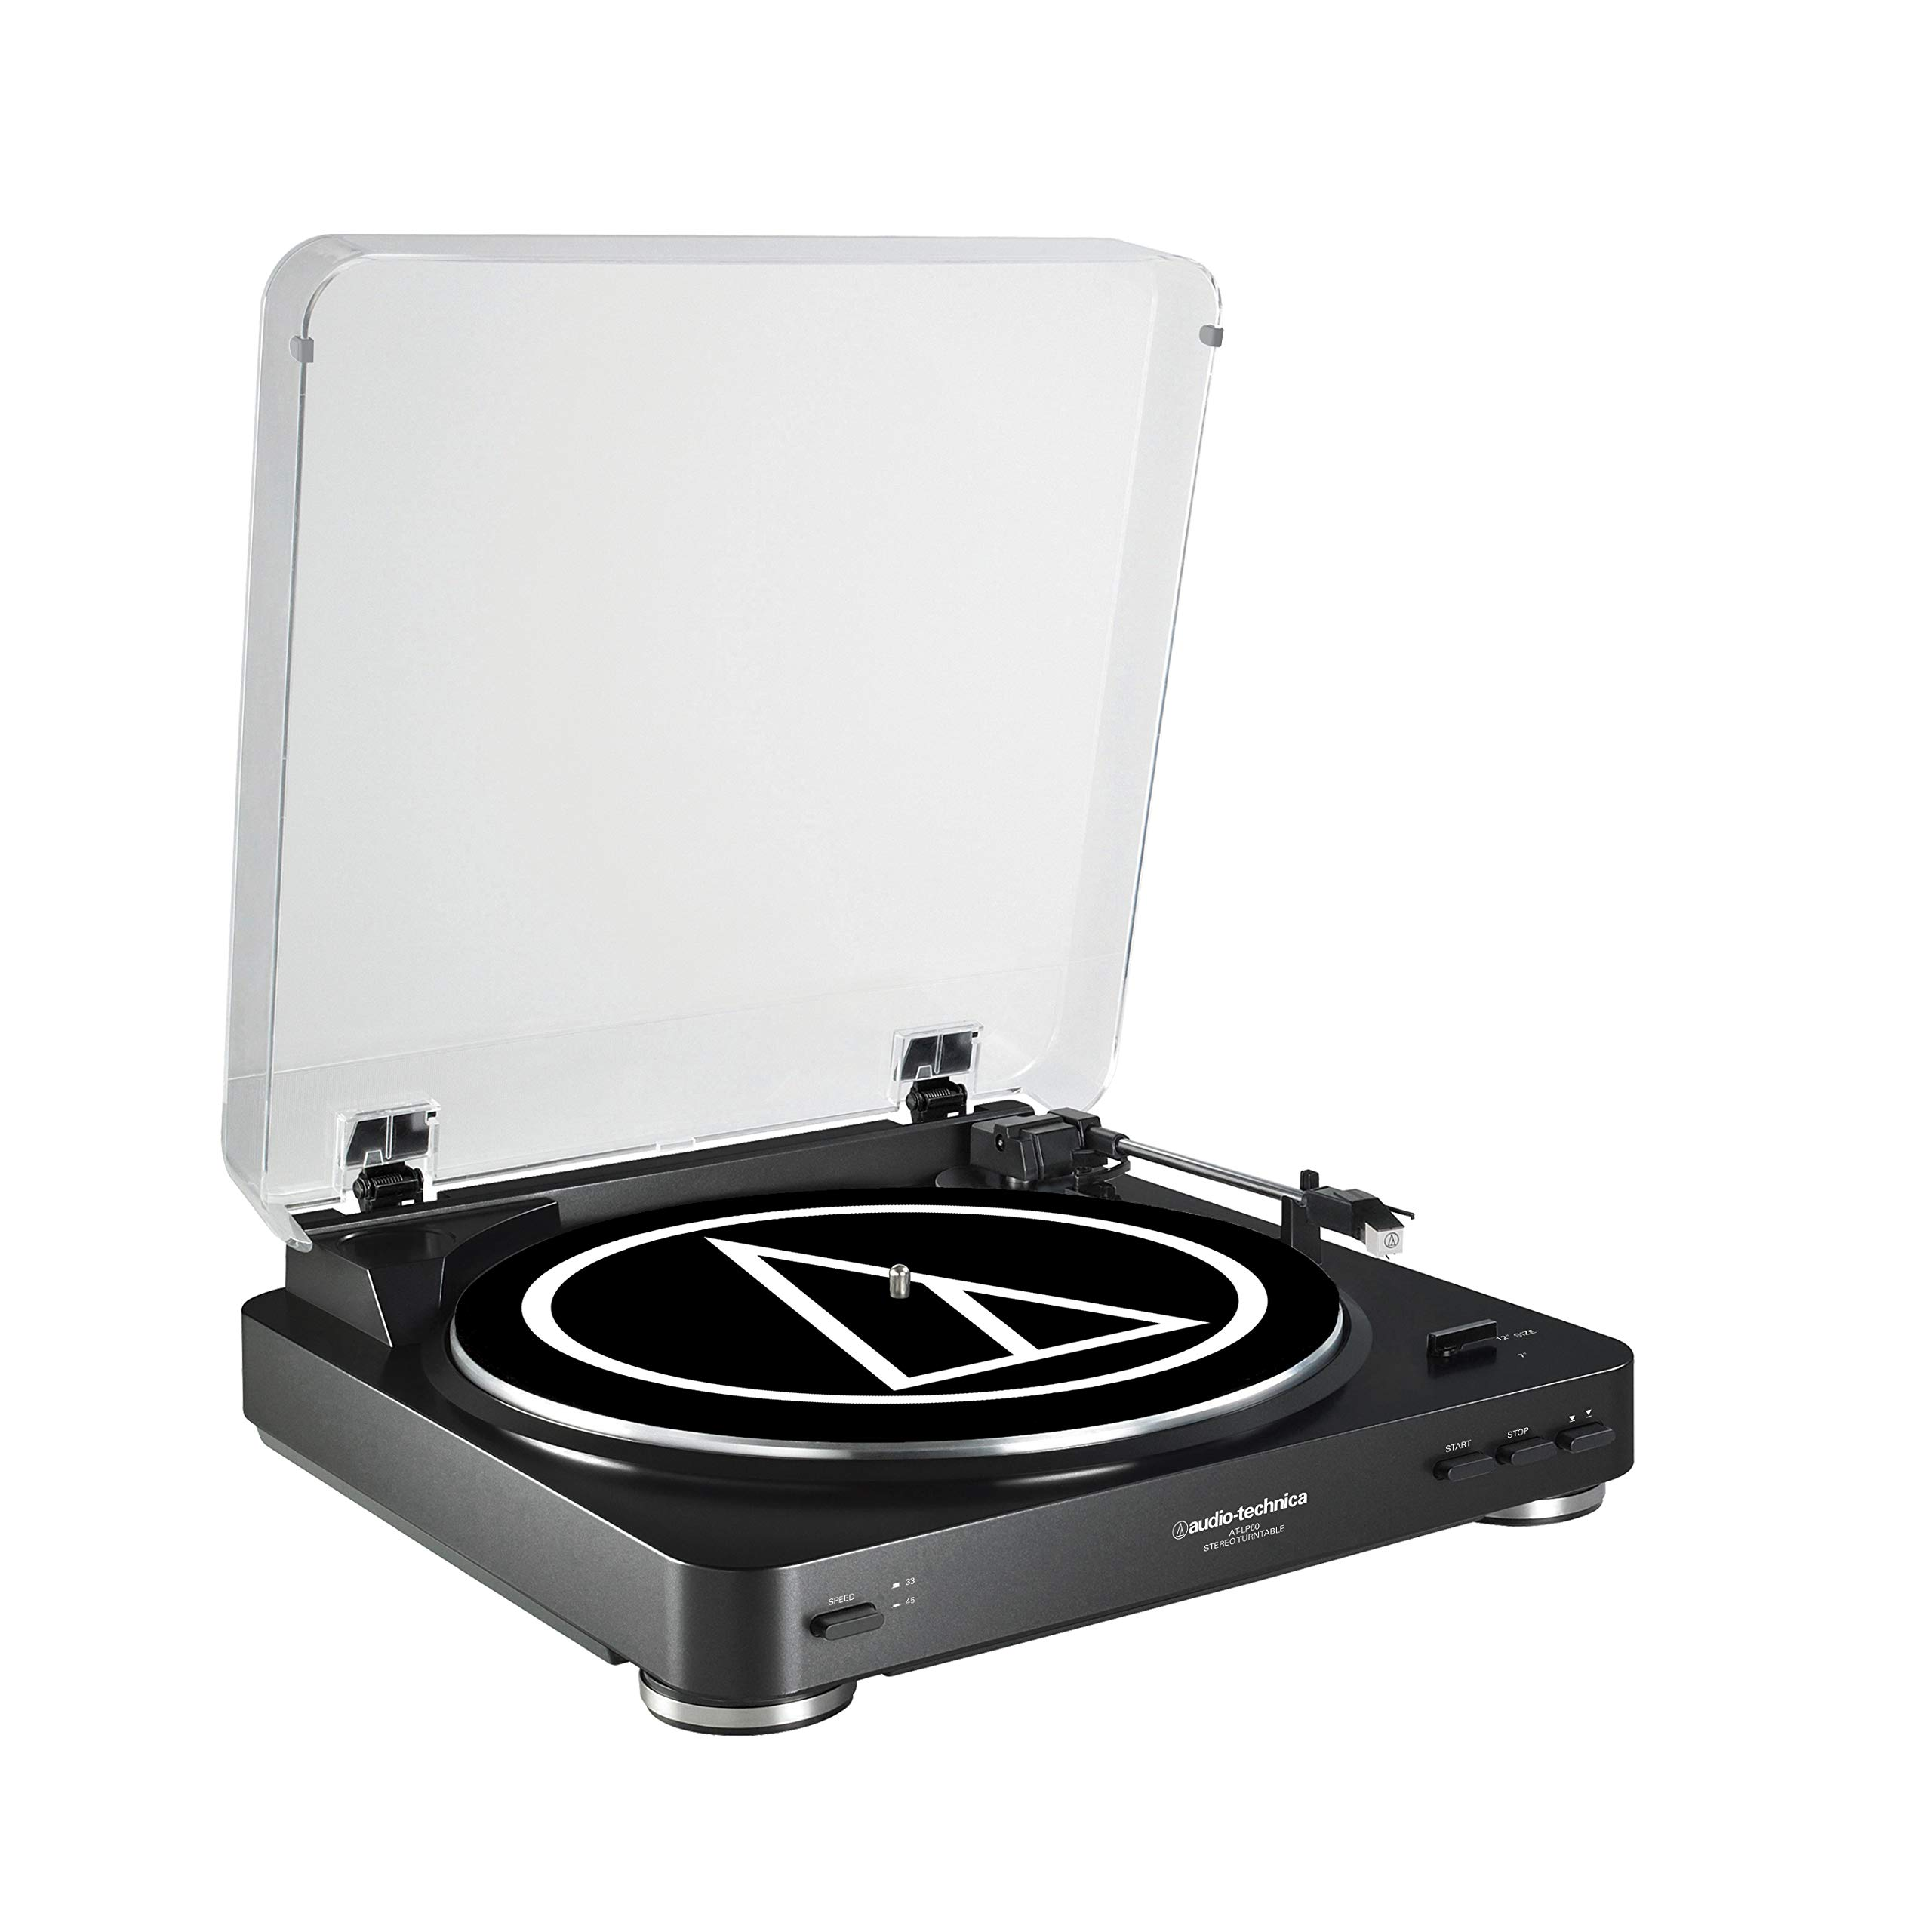 Audio Technica ATLP60 Automatic Stereo Turntable